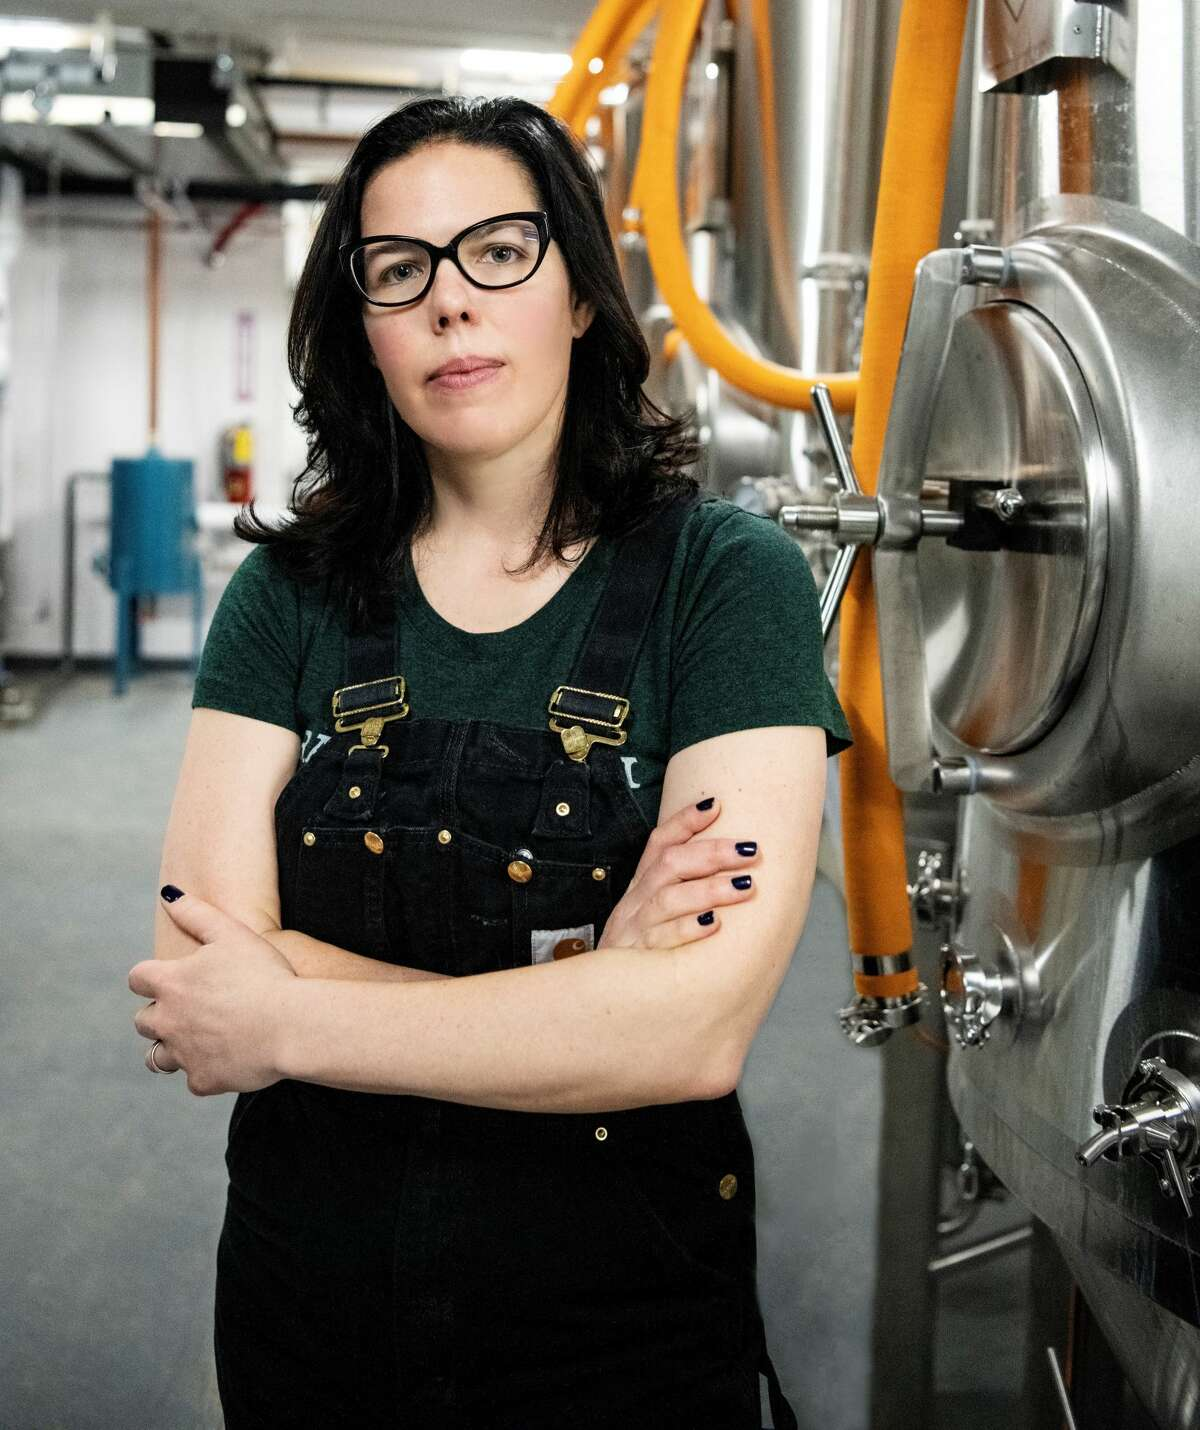 Only an estimated 4% of craft breweries have a female head brewer. Roe Jan Brewing Co. in Hillsdale, whose brewing operations are led by Hayley Shine,is one of them.